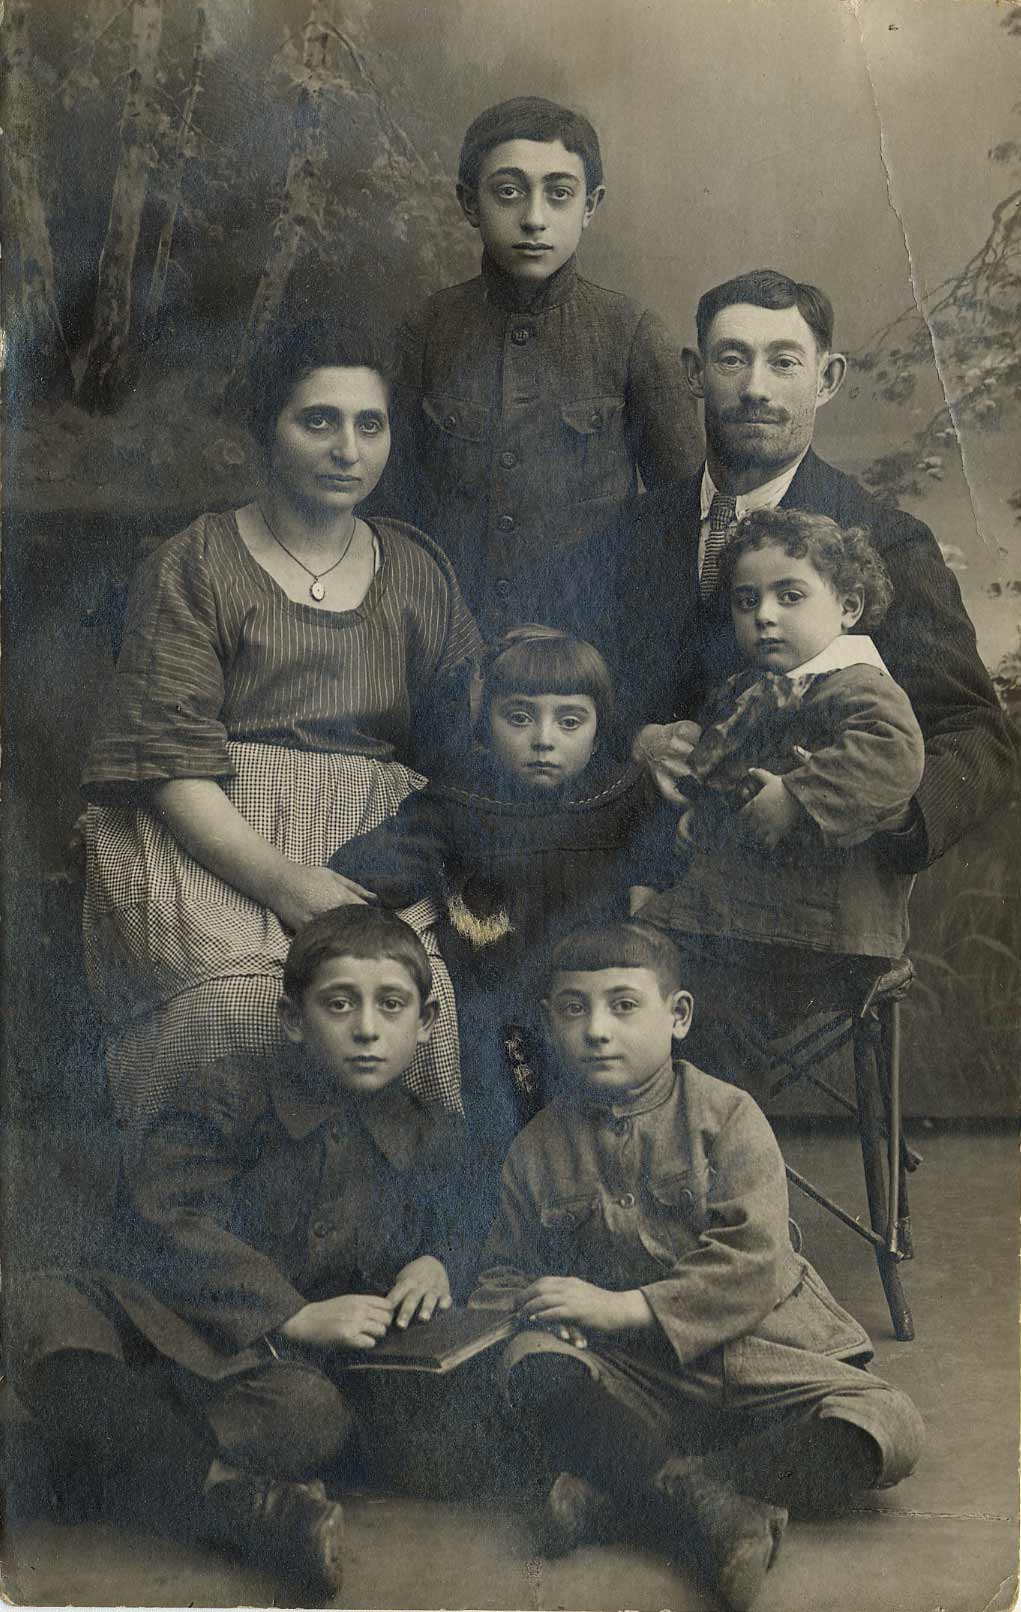 A portrait of the Feigenbaum family, Lodz, 1921. Avrum, as a child, sitting on the lap of his father Icak. He is surrounded by his mother Cyna, his sister Mindl, and his brother Eli standing in the back. His brothers Hersh and Mordechai sit in the front. Of the whole family, only Avrum and Hersh survived the Holocaust.